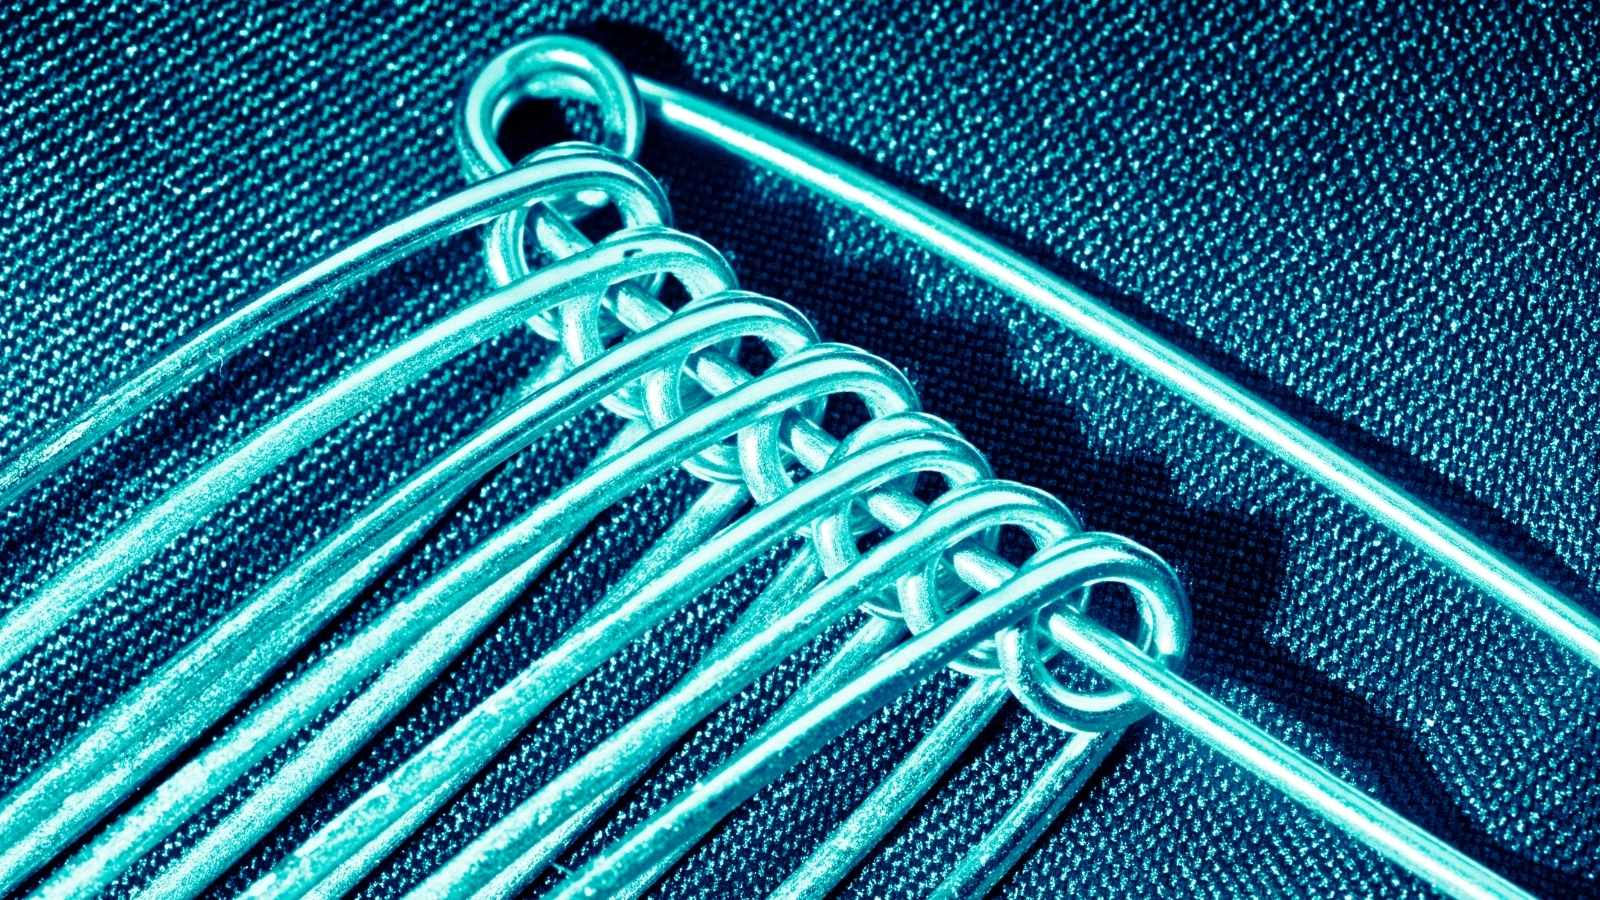 Close up of safety pins with blue filter